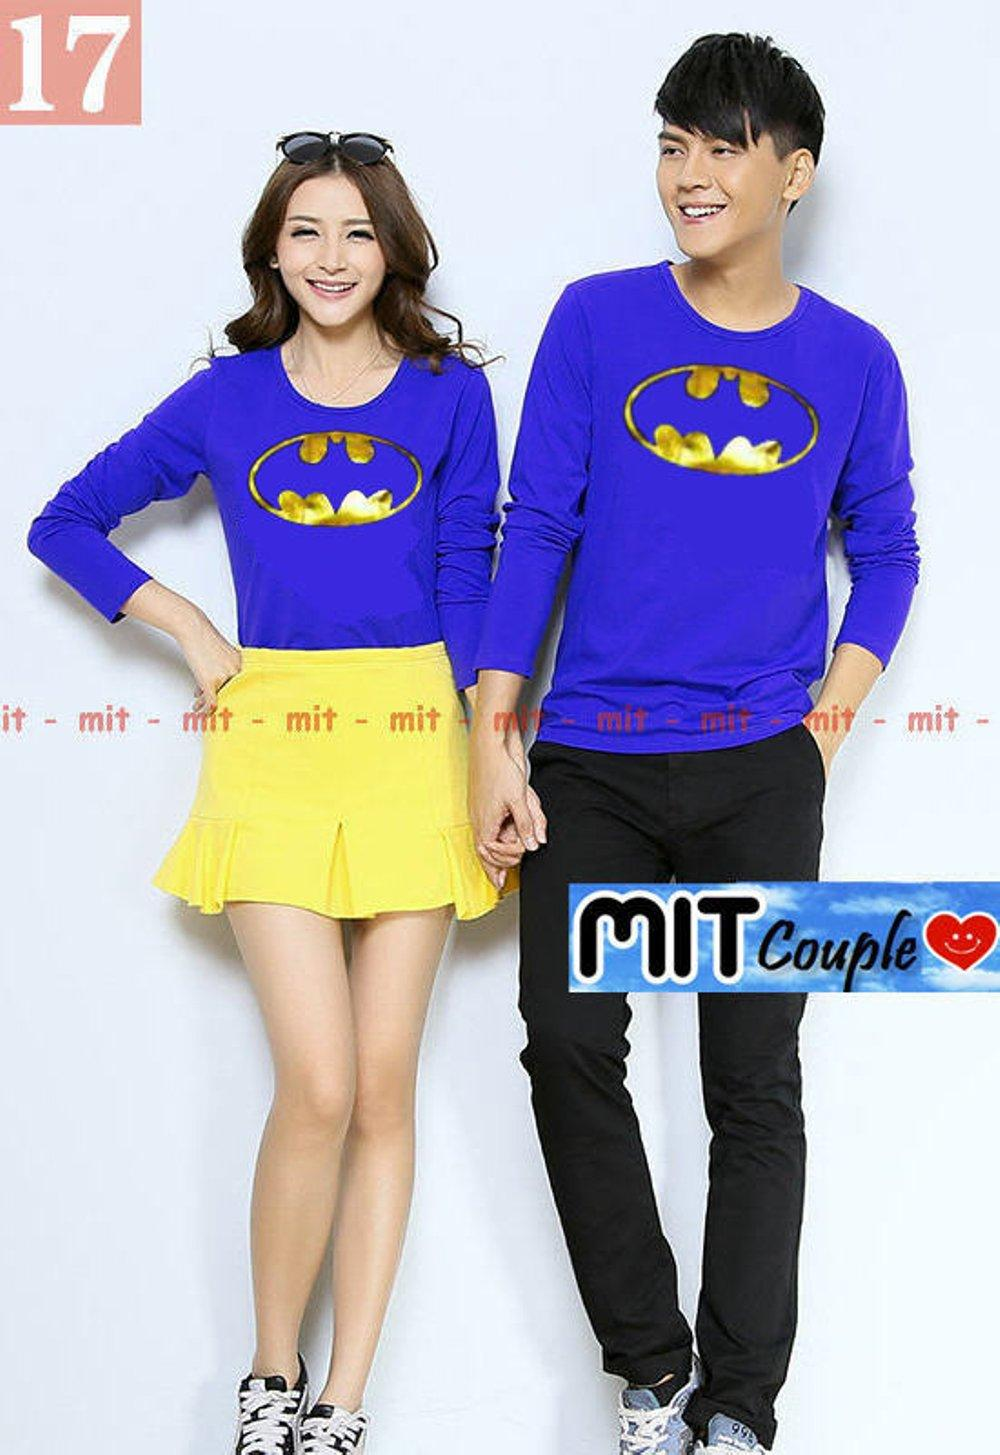 KAOS COUPLE BATMAN GOLD FOIL LP (BIRU) di lapak COUPLE GROSIR couplegrosir